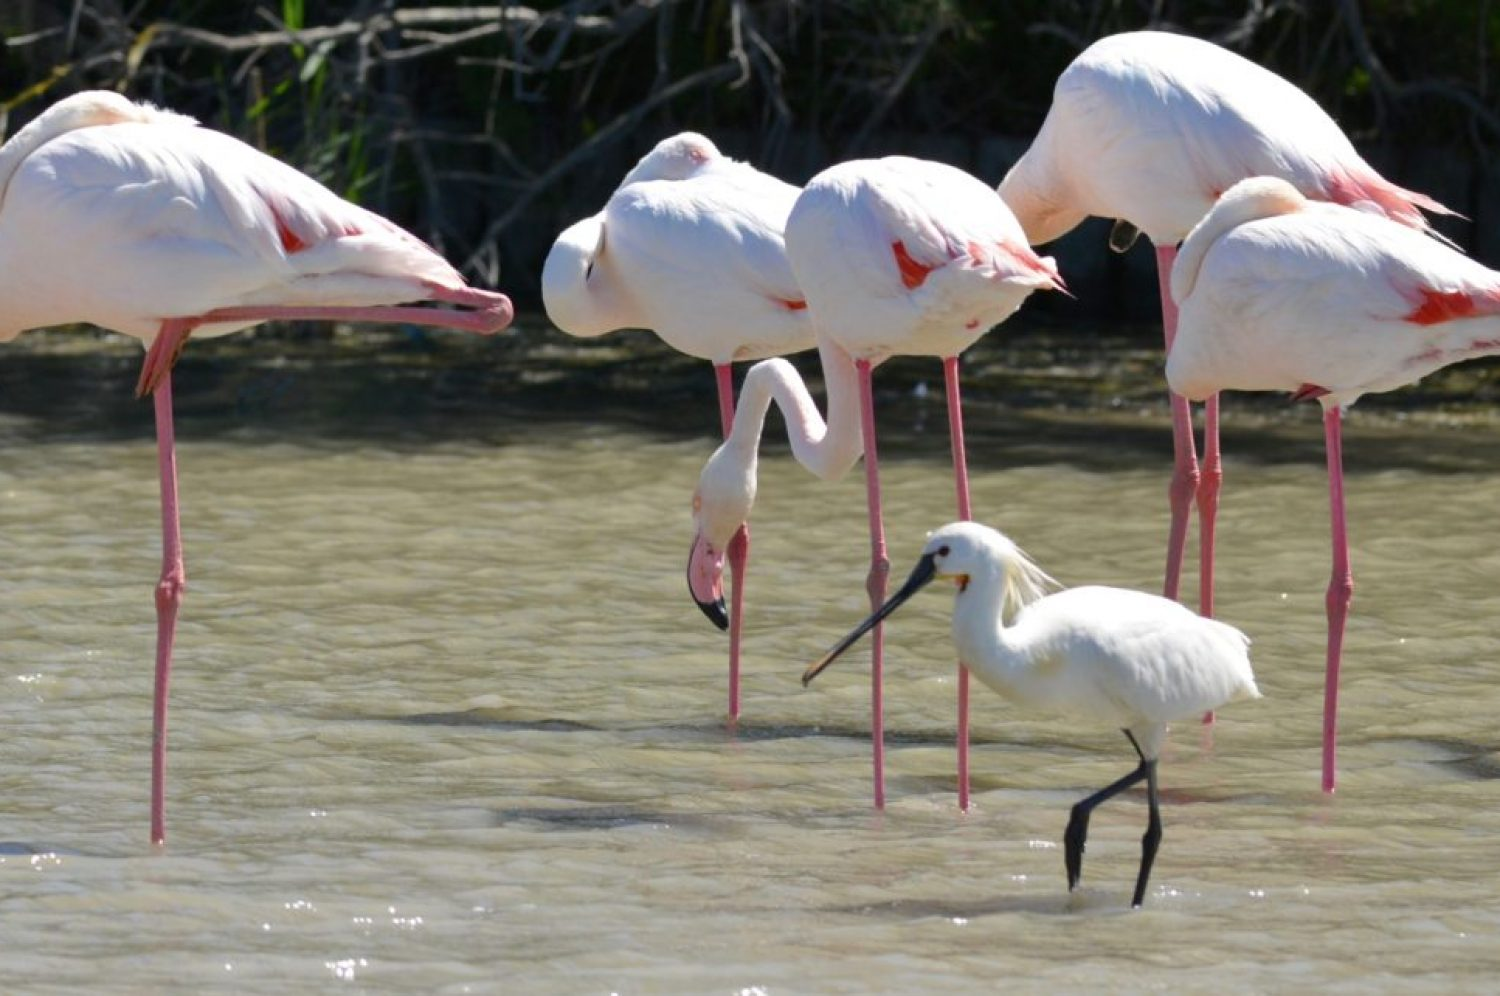 Birdwatching in Camargue